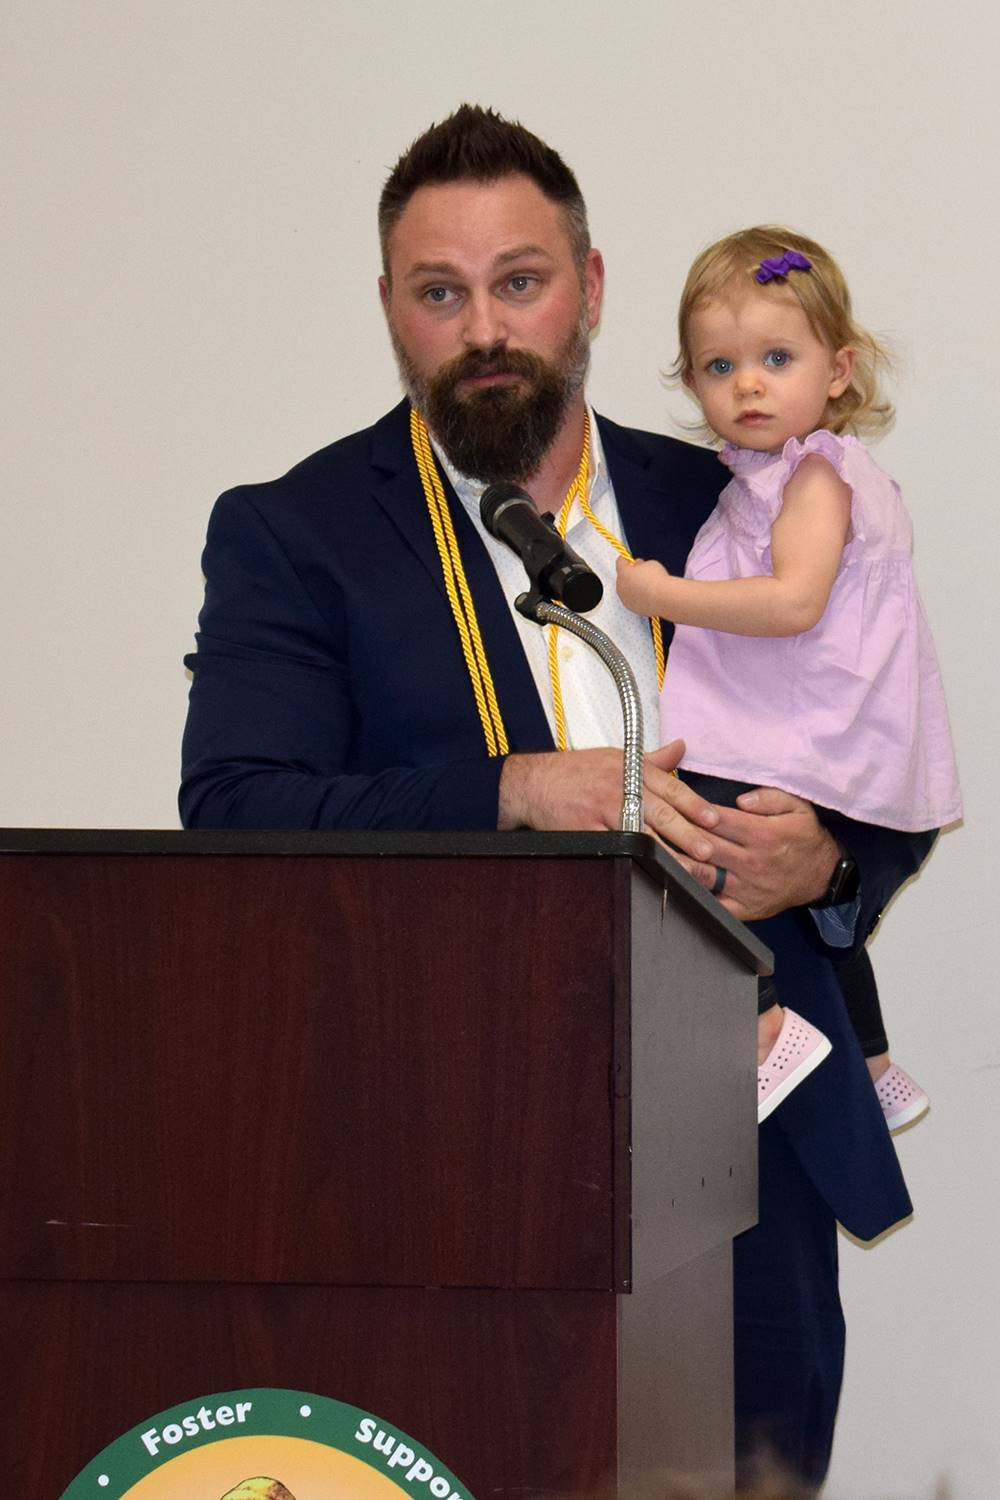 Mr. Jared Campbell at the podium, holding his youngest daughter as he gives his acceptance speech.